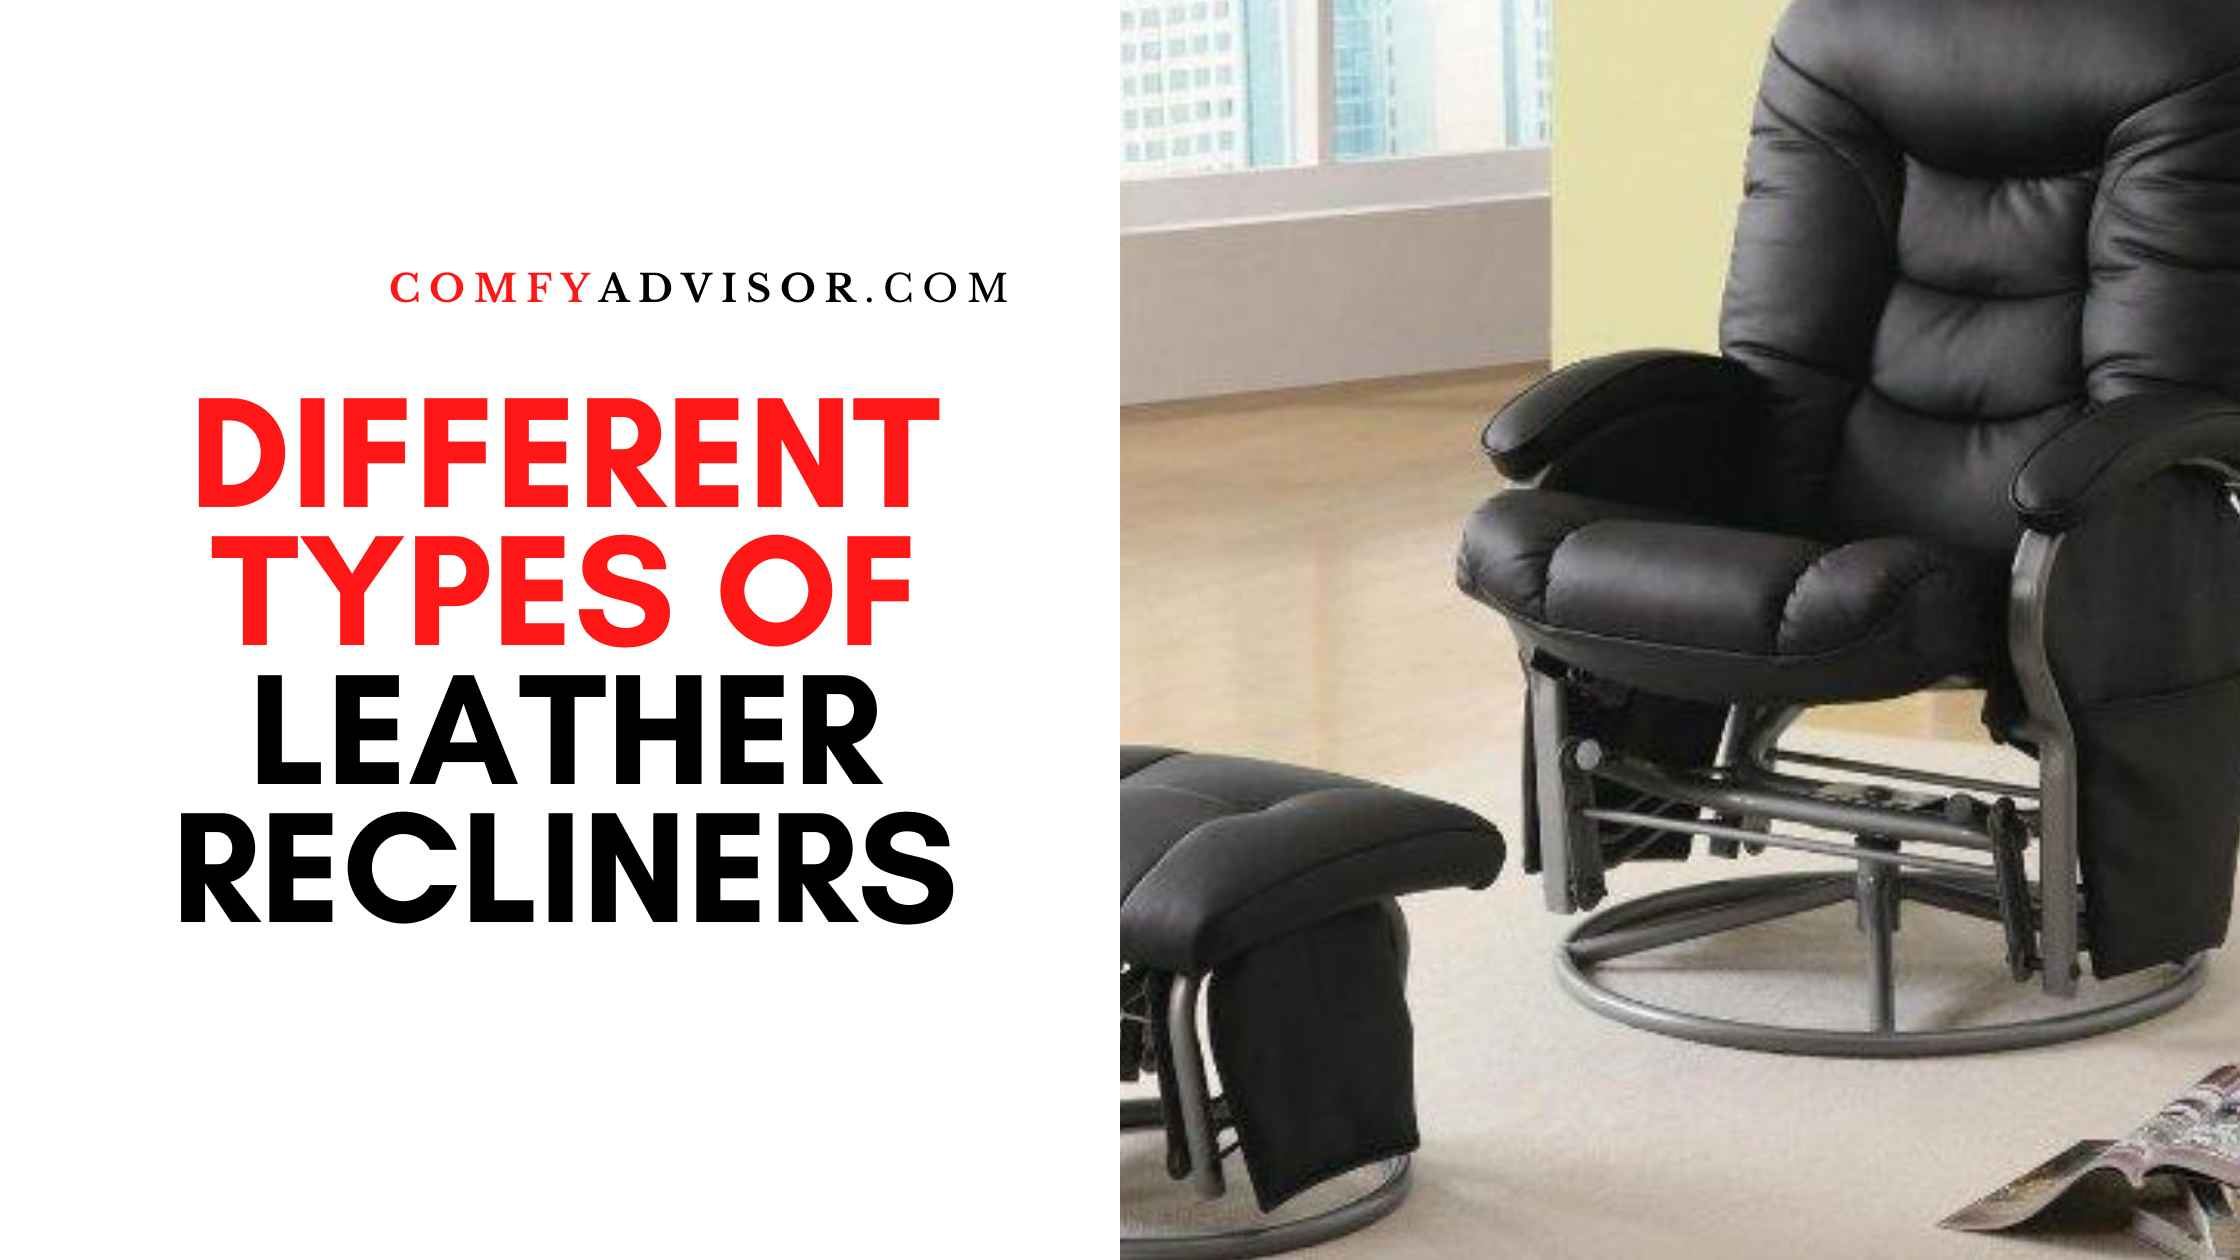 Different Types of Leather Recliners